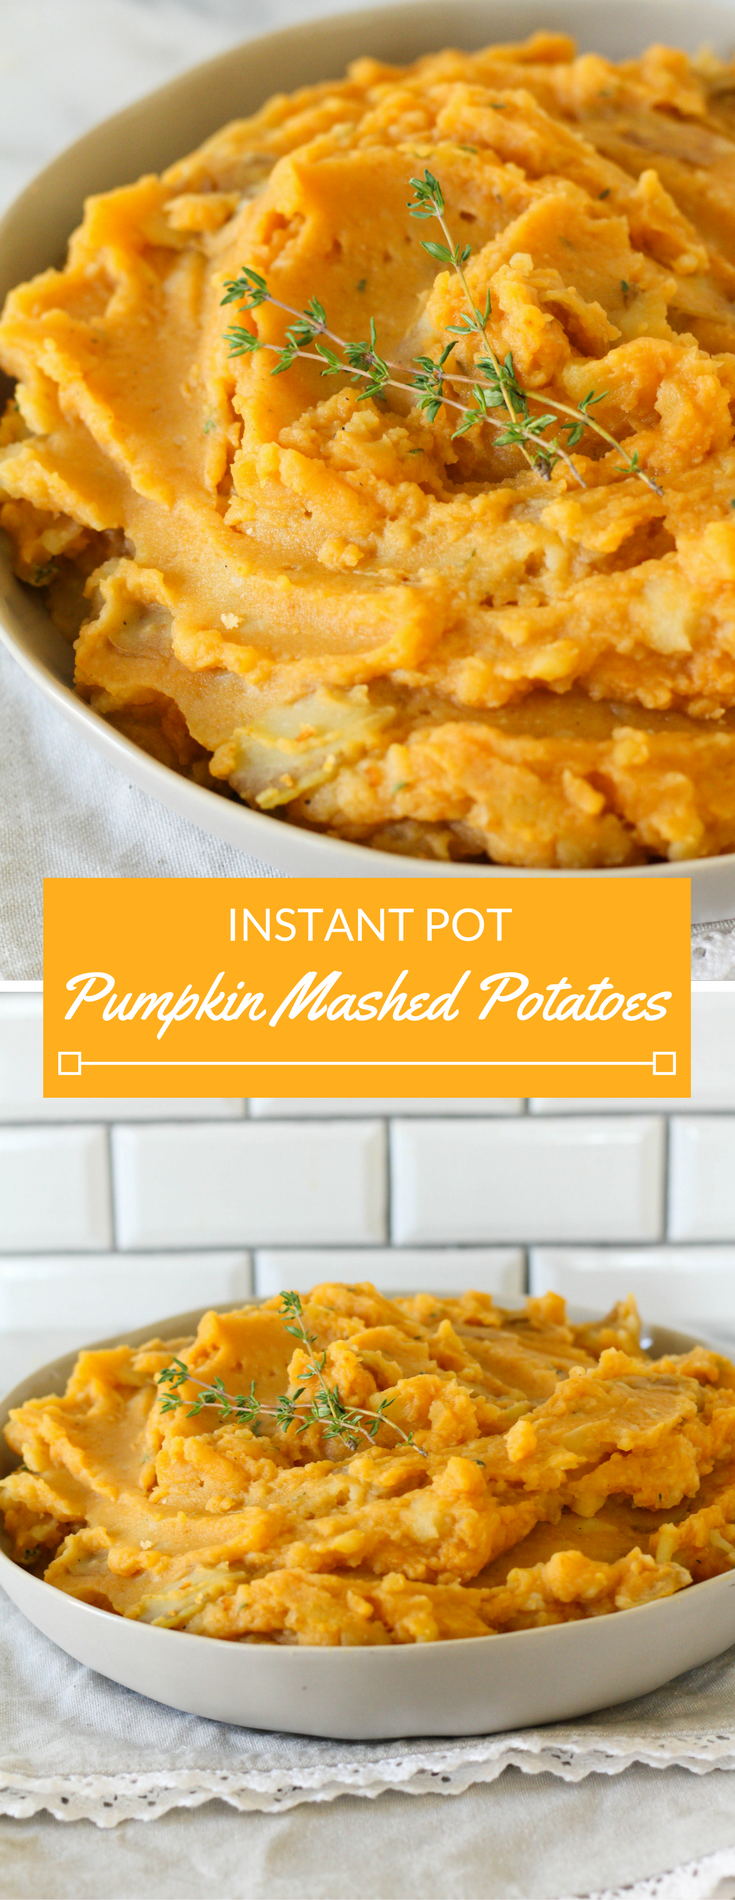 Instant pot pumpkin mashed potatoes are a delicious Thanksgiving staple. Made with potatoes, milk, thyme, and a special ingredient, pumpkin!